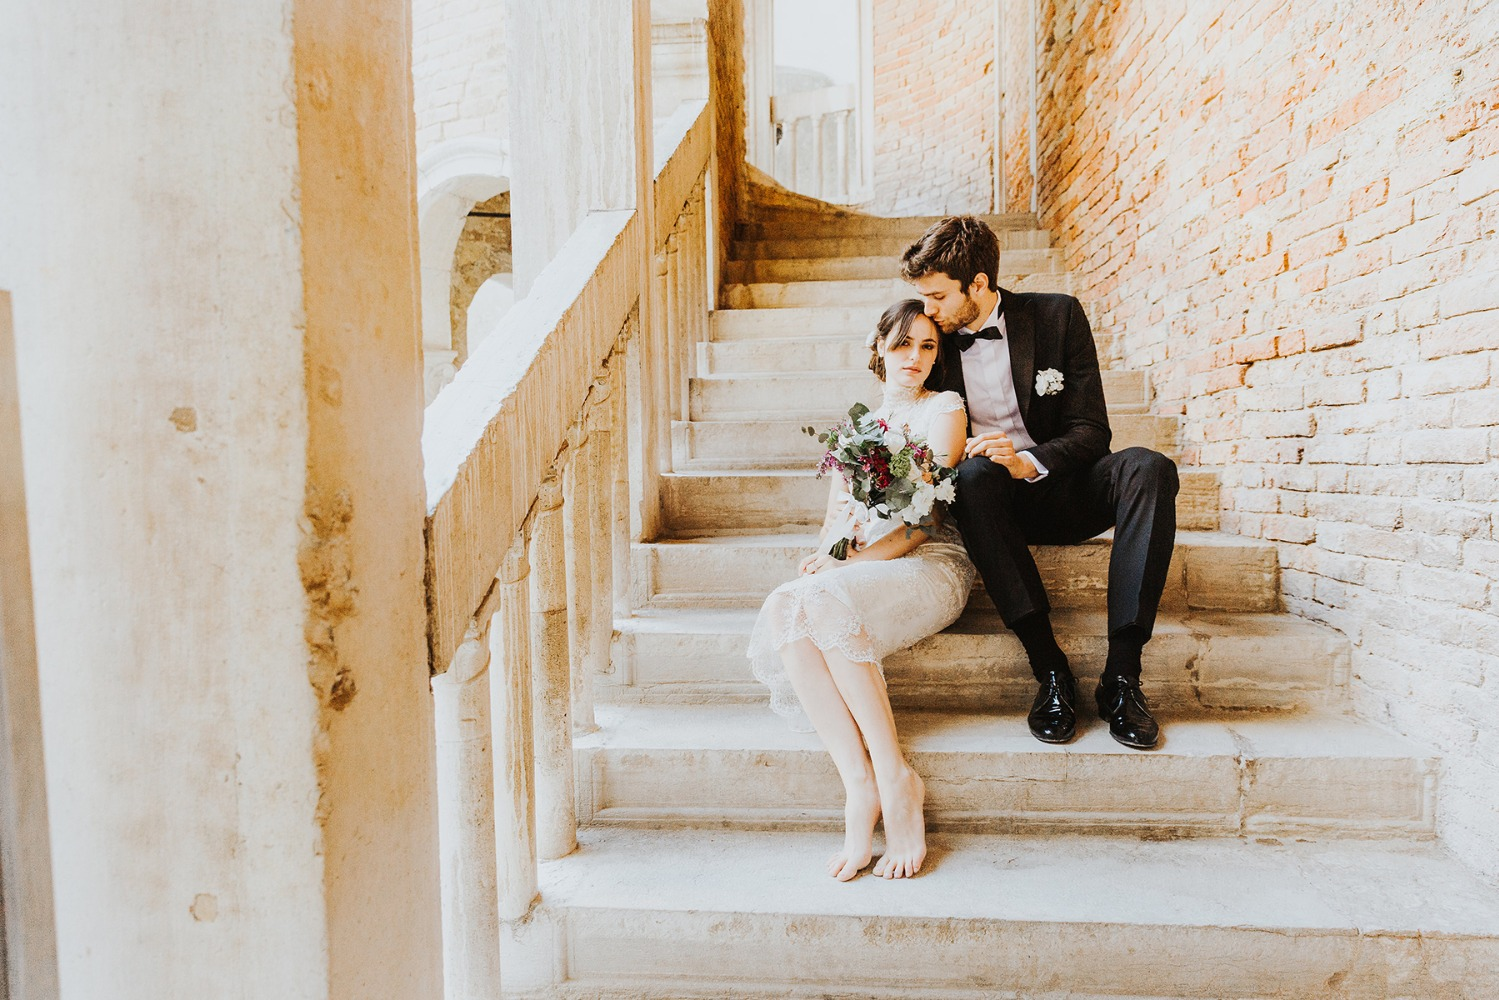 sweet wedding photo idea on the stairs